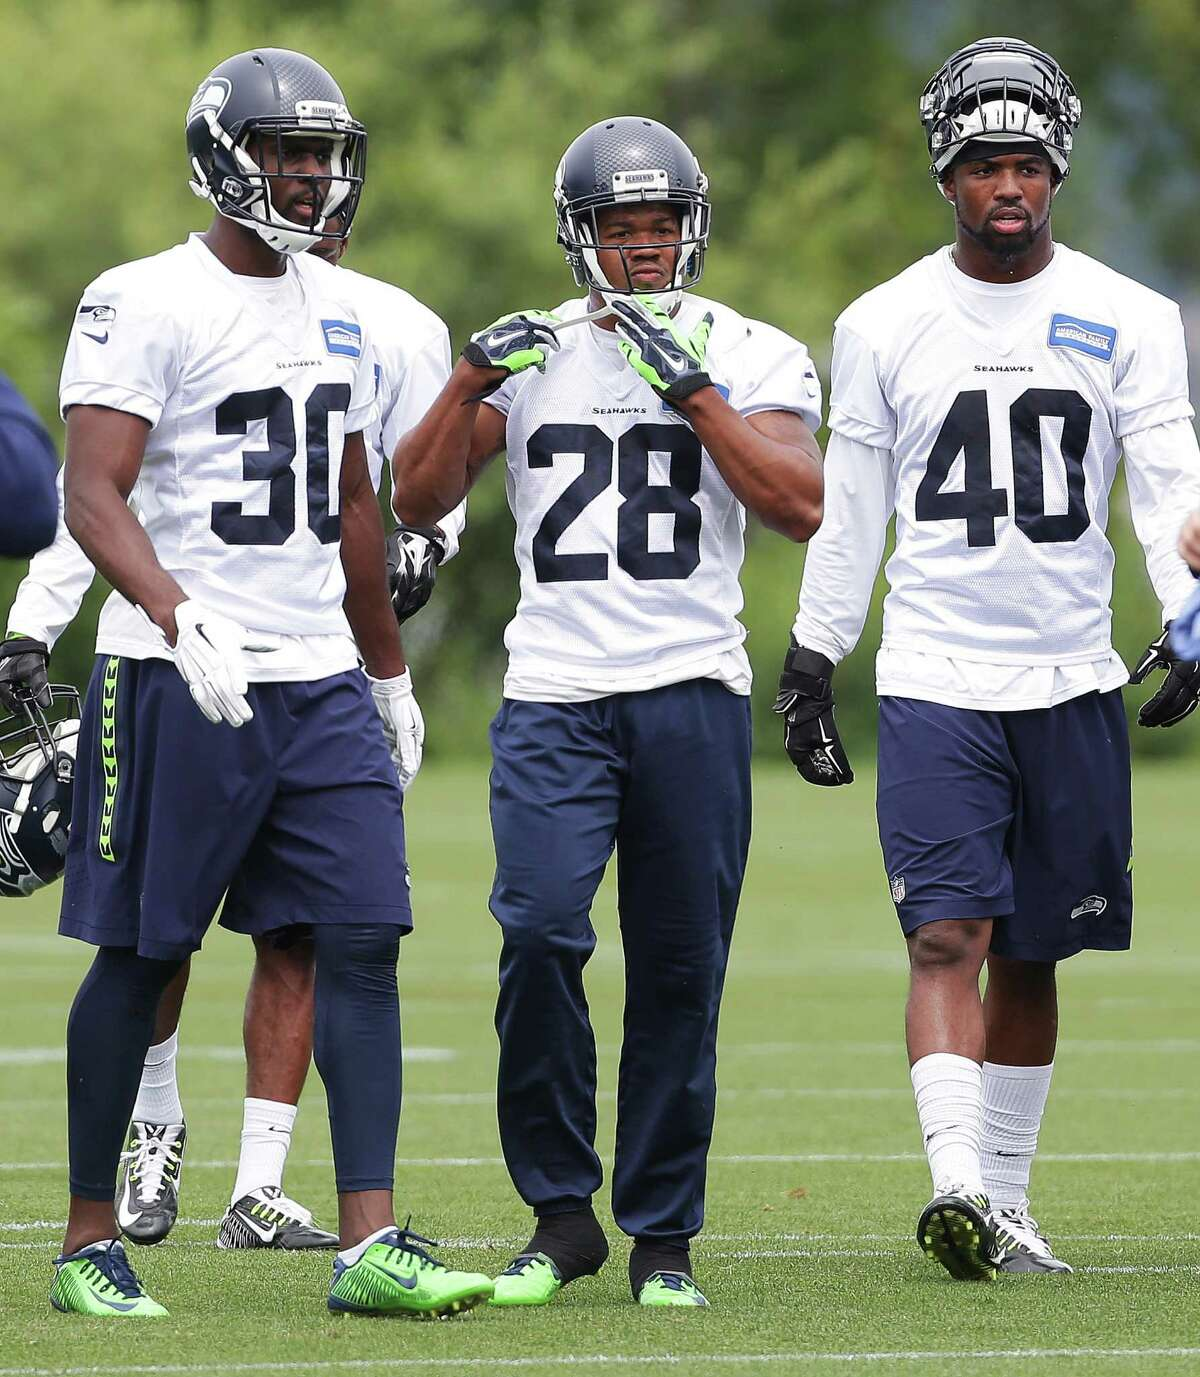 Tough road ahead for young D-backs It's going to be incredibly difficult for young players to break through in Seattle's defensive backfield. That was evident during OTAs, when all of the founding members of the